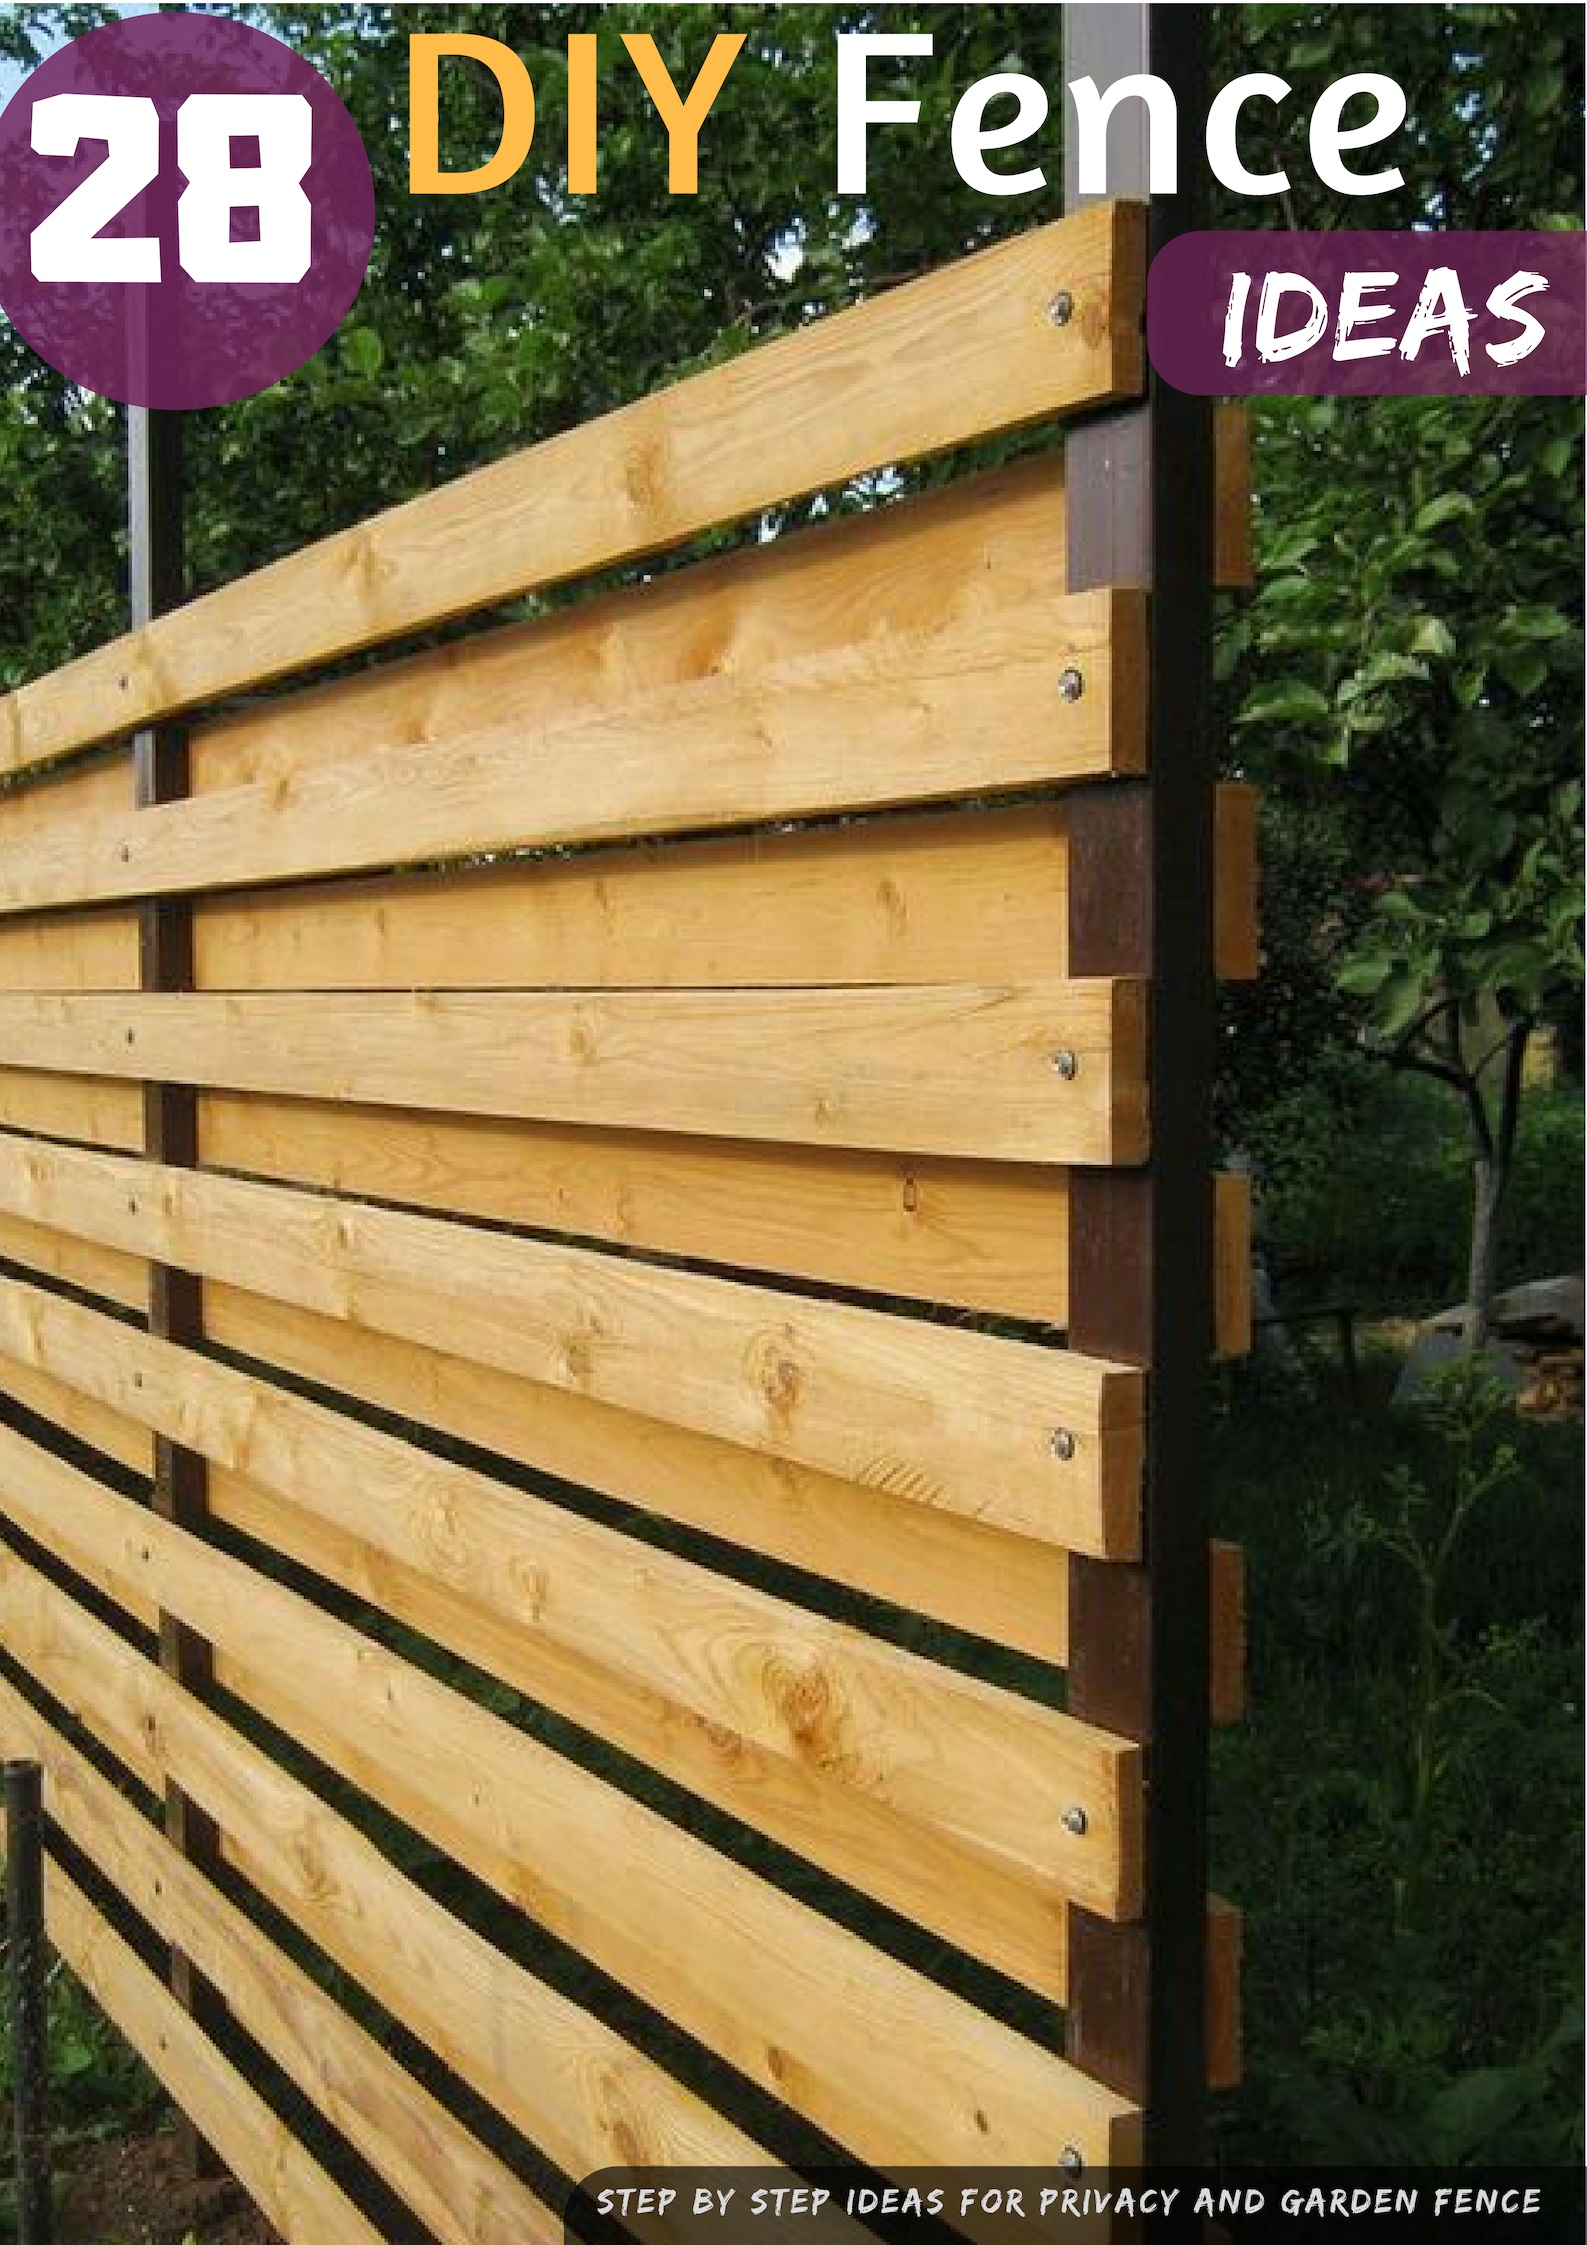 29 Diy Fence Ideas Garden And Privacy On A Budget